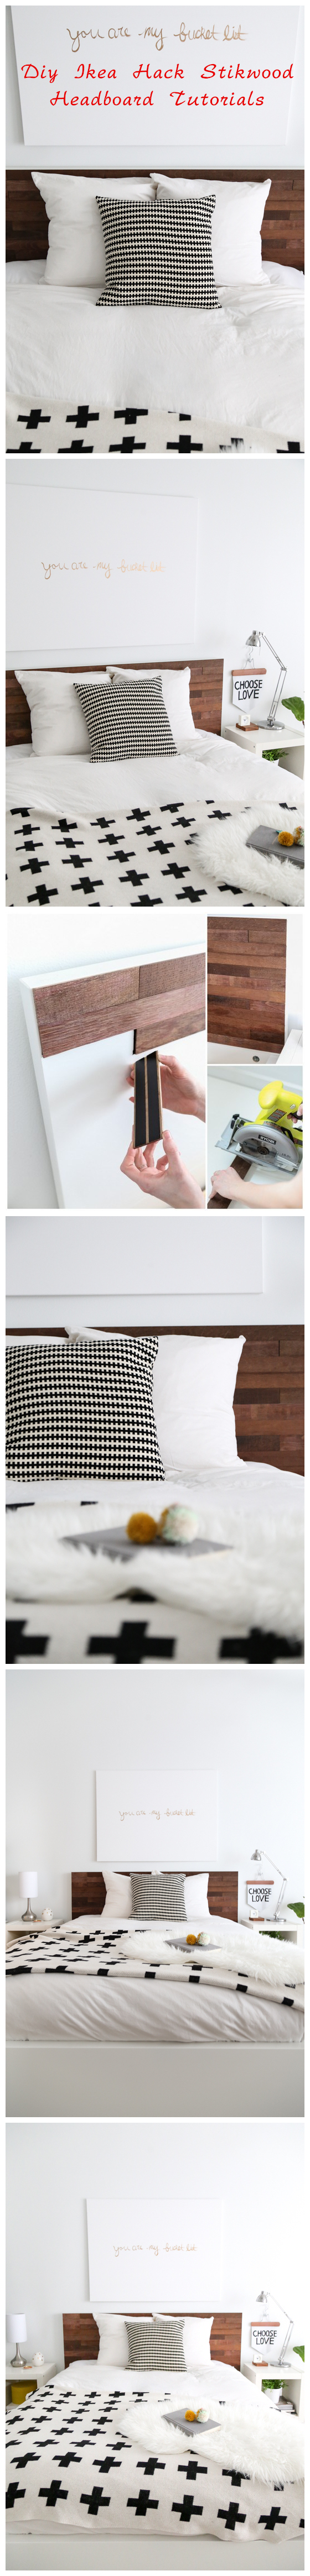 Diy Ikea Hack Stikwood Headboard Tutorials